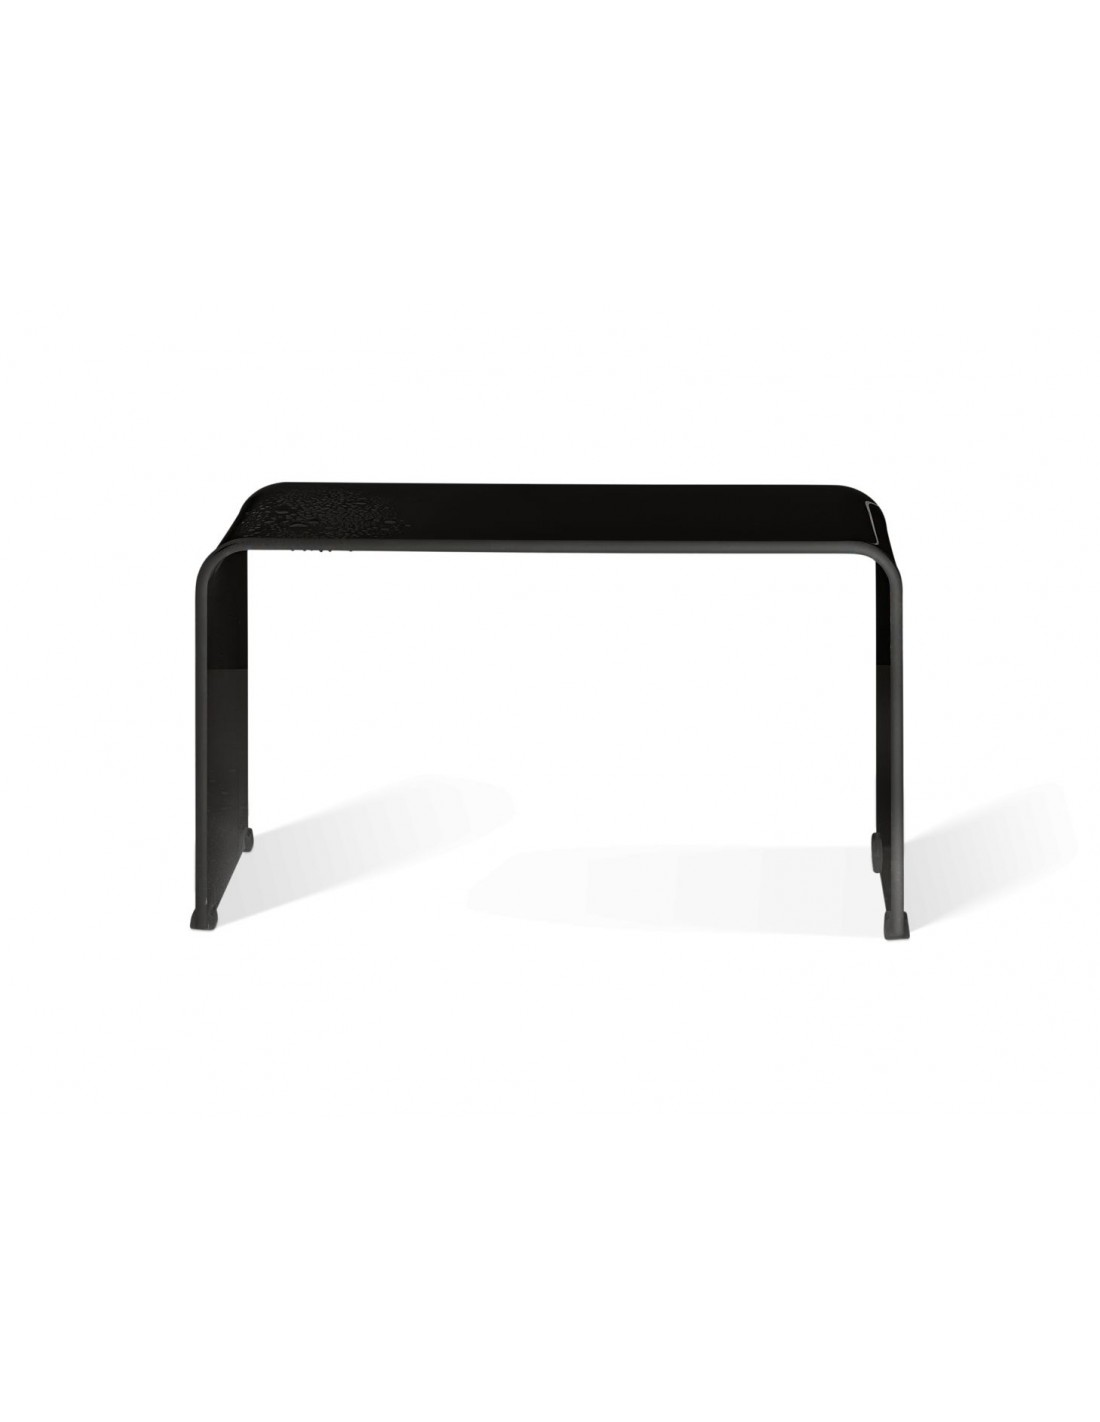 banc banc douche decor walther noir en acrylique. Black Bedroom Furniture Sets. Home Design Ideas